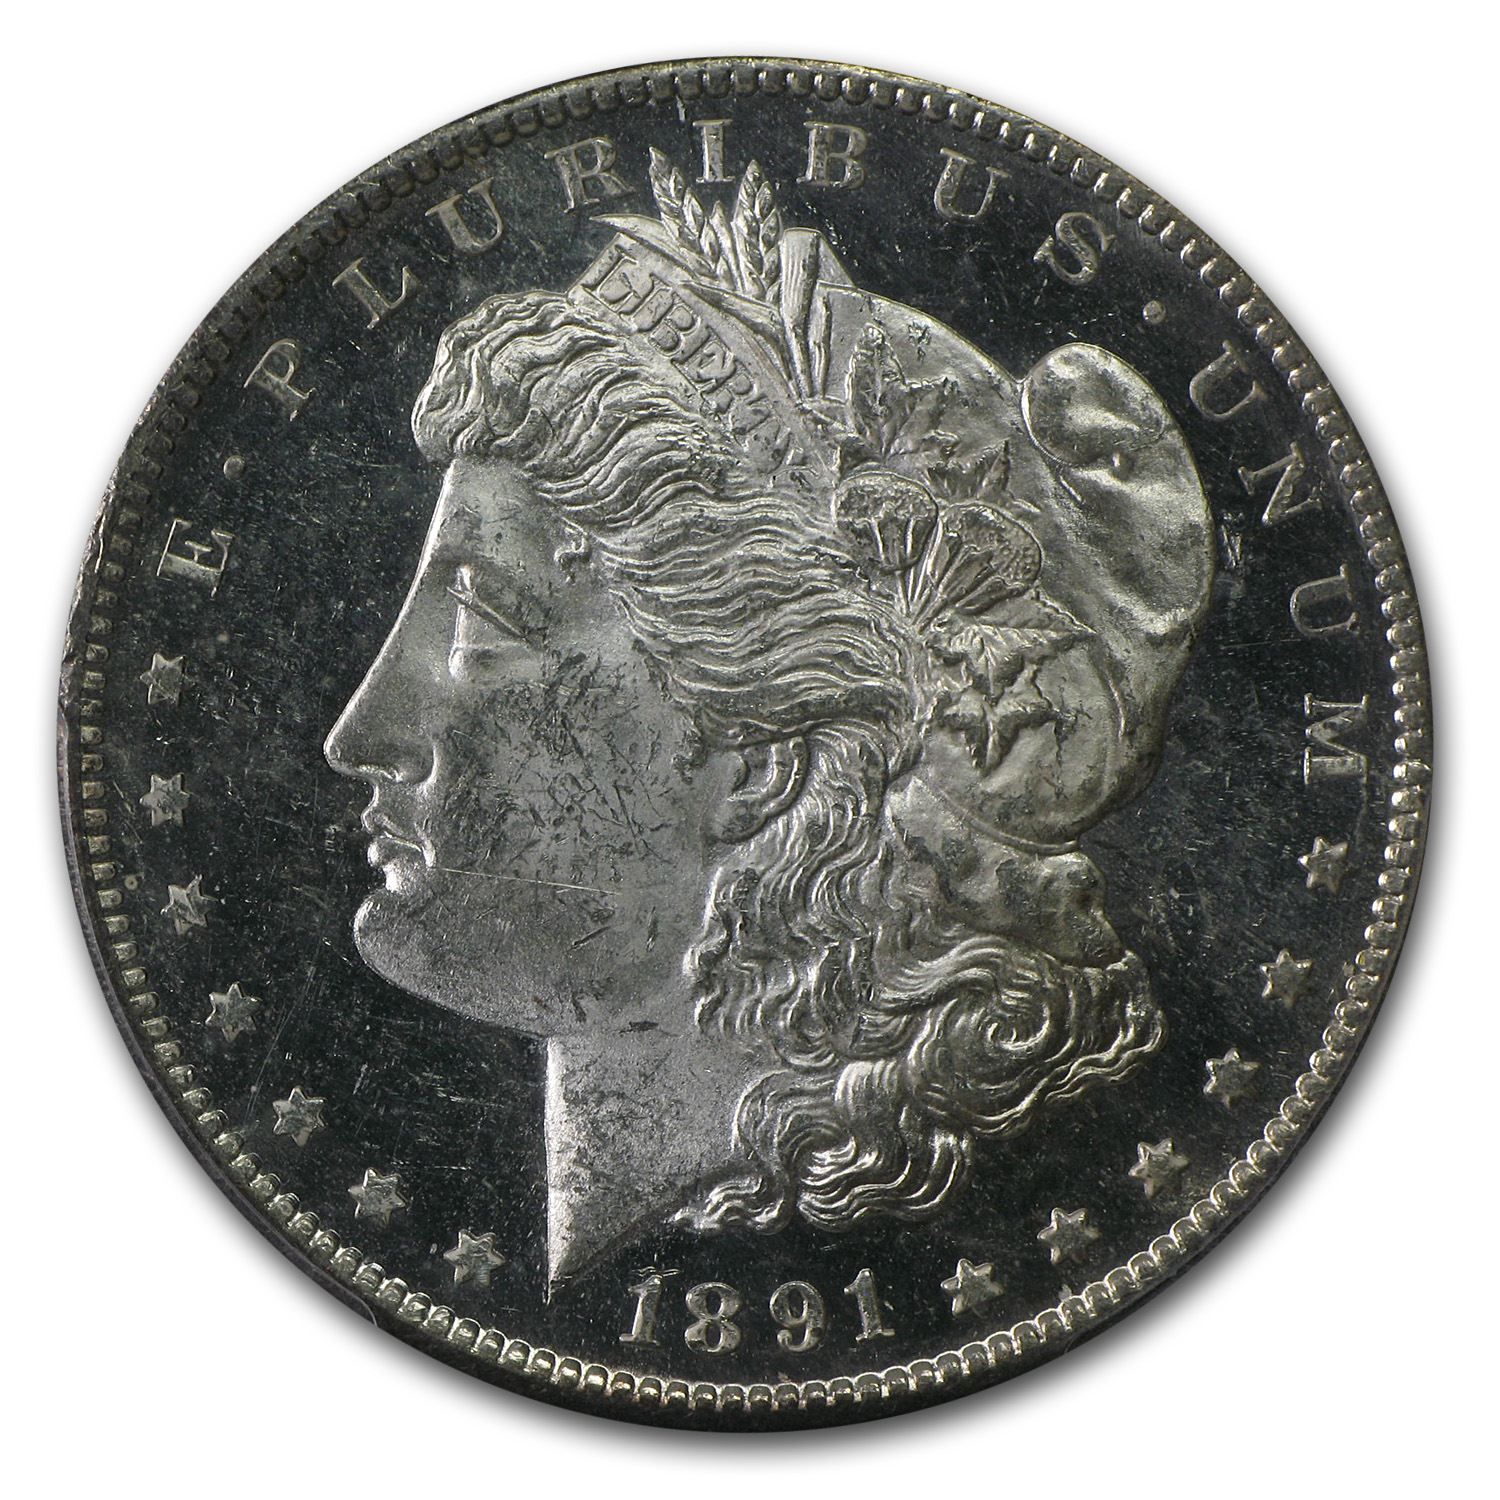 1891-S Morgan Dollar MS-63 PL Proof Like PCGS